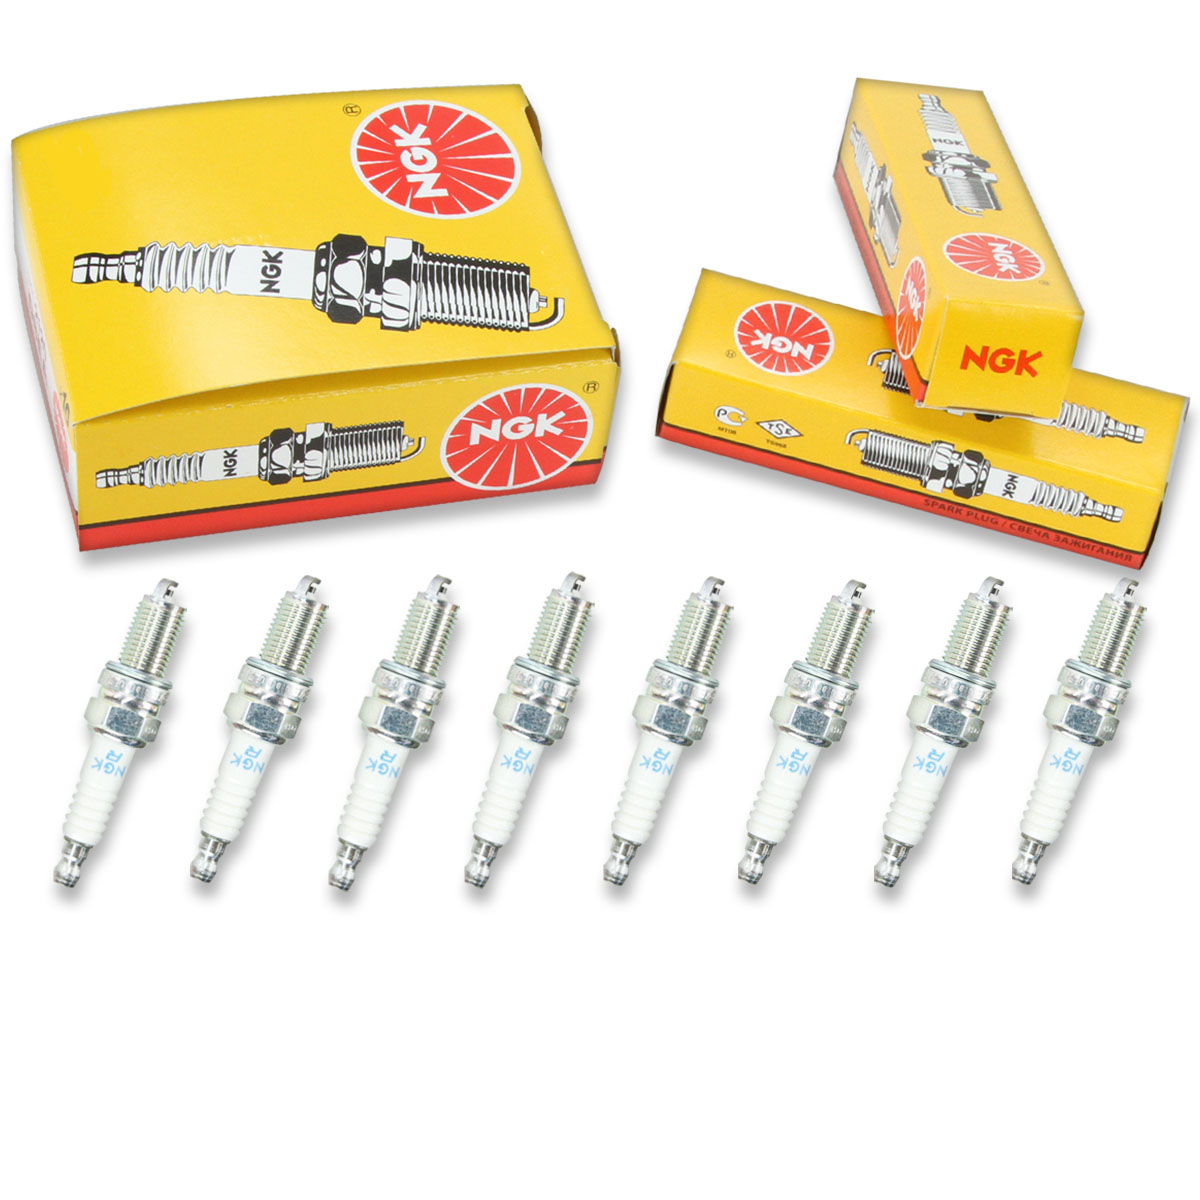 8 pc 8 x NGK Standard Plug Spark Plugs 3932 DCPR7E 3932 DCPR7E Tune Up Kit md